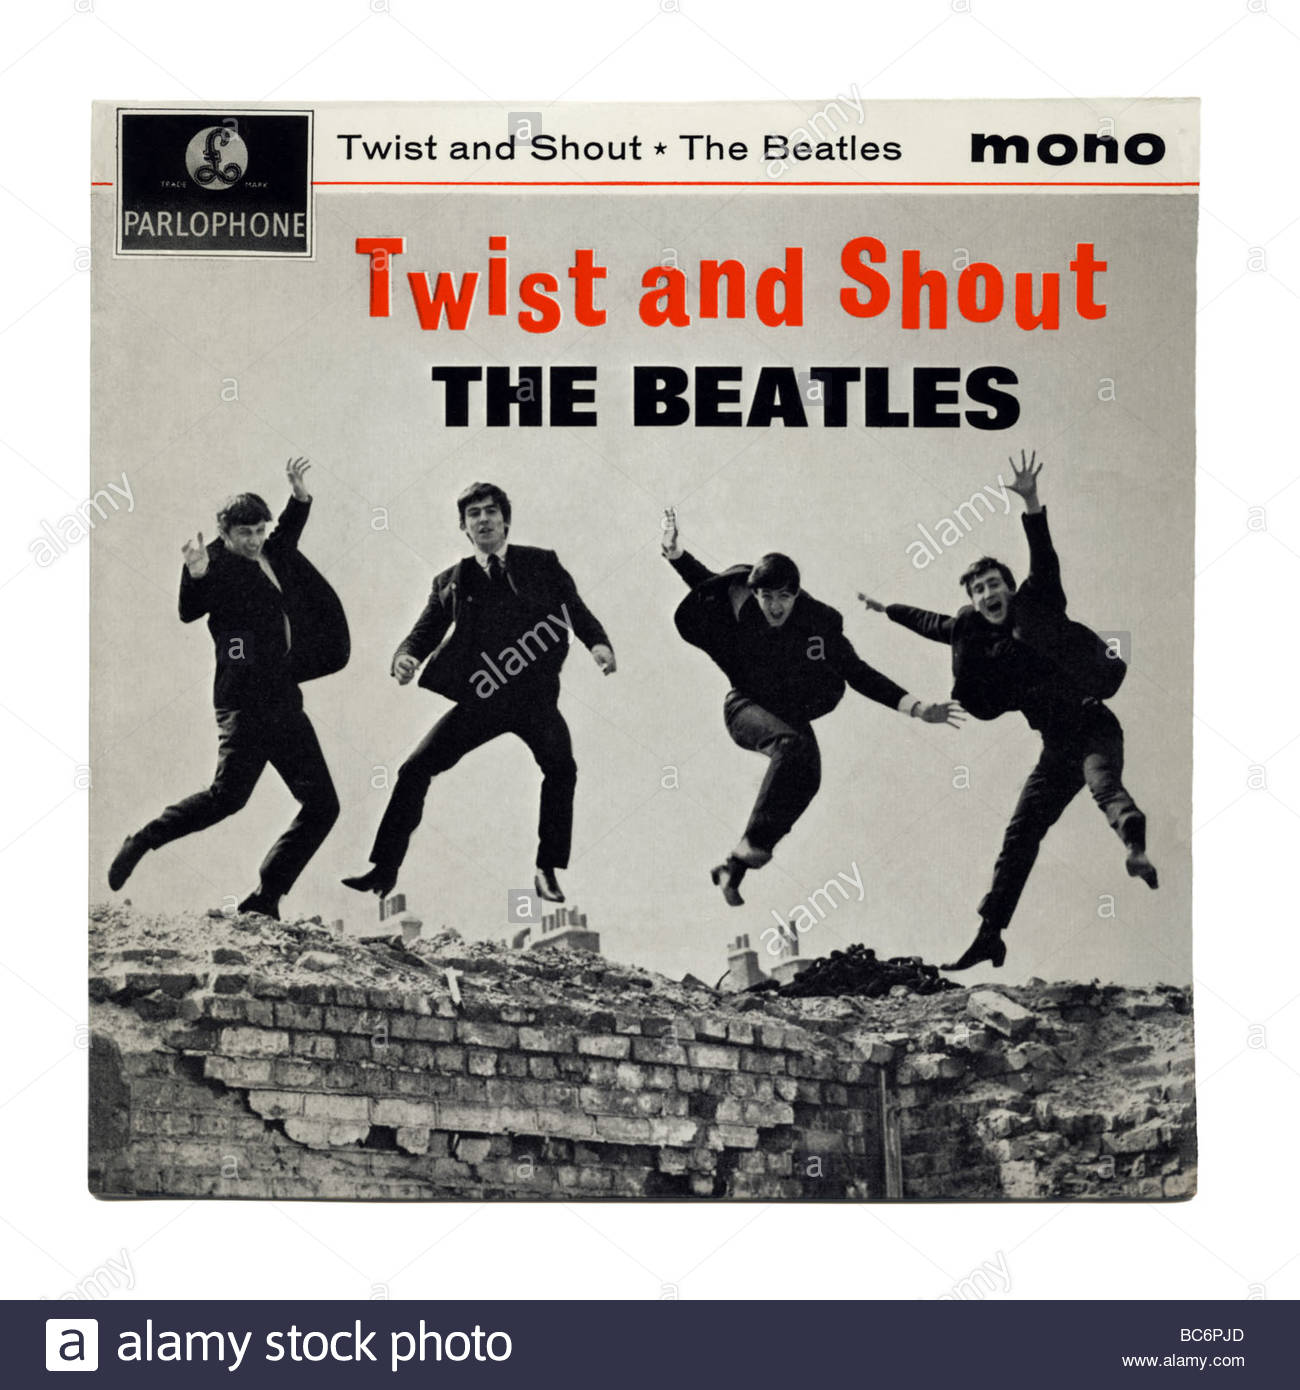 'Twist and Shout' by The Beatles, an EP record first released in 1963 - Stock Image